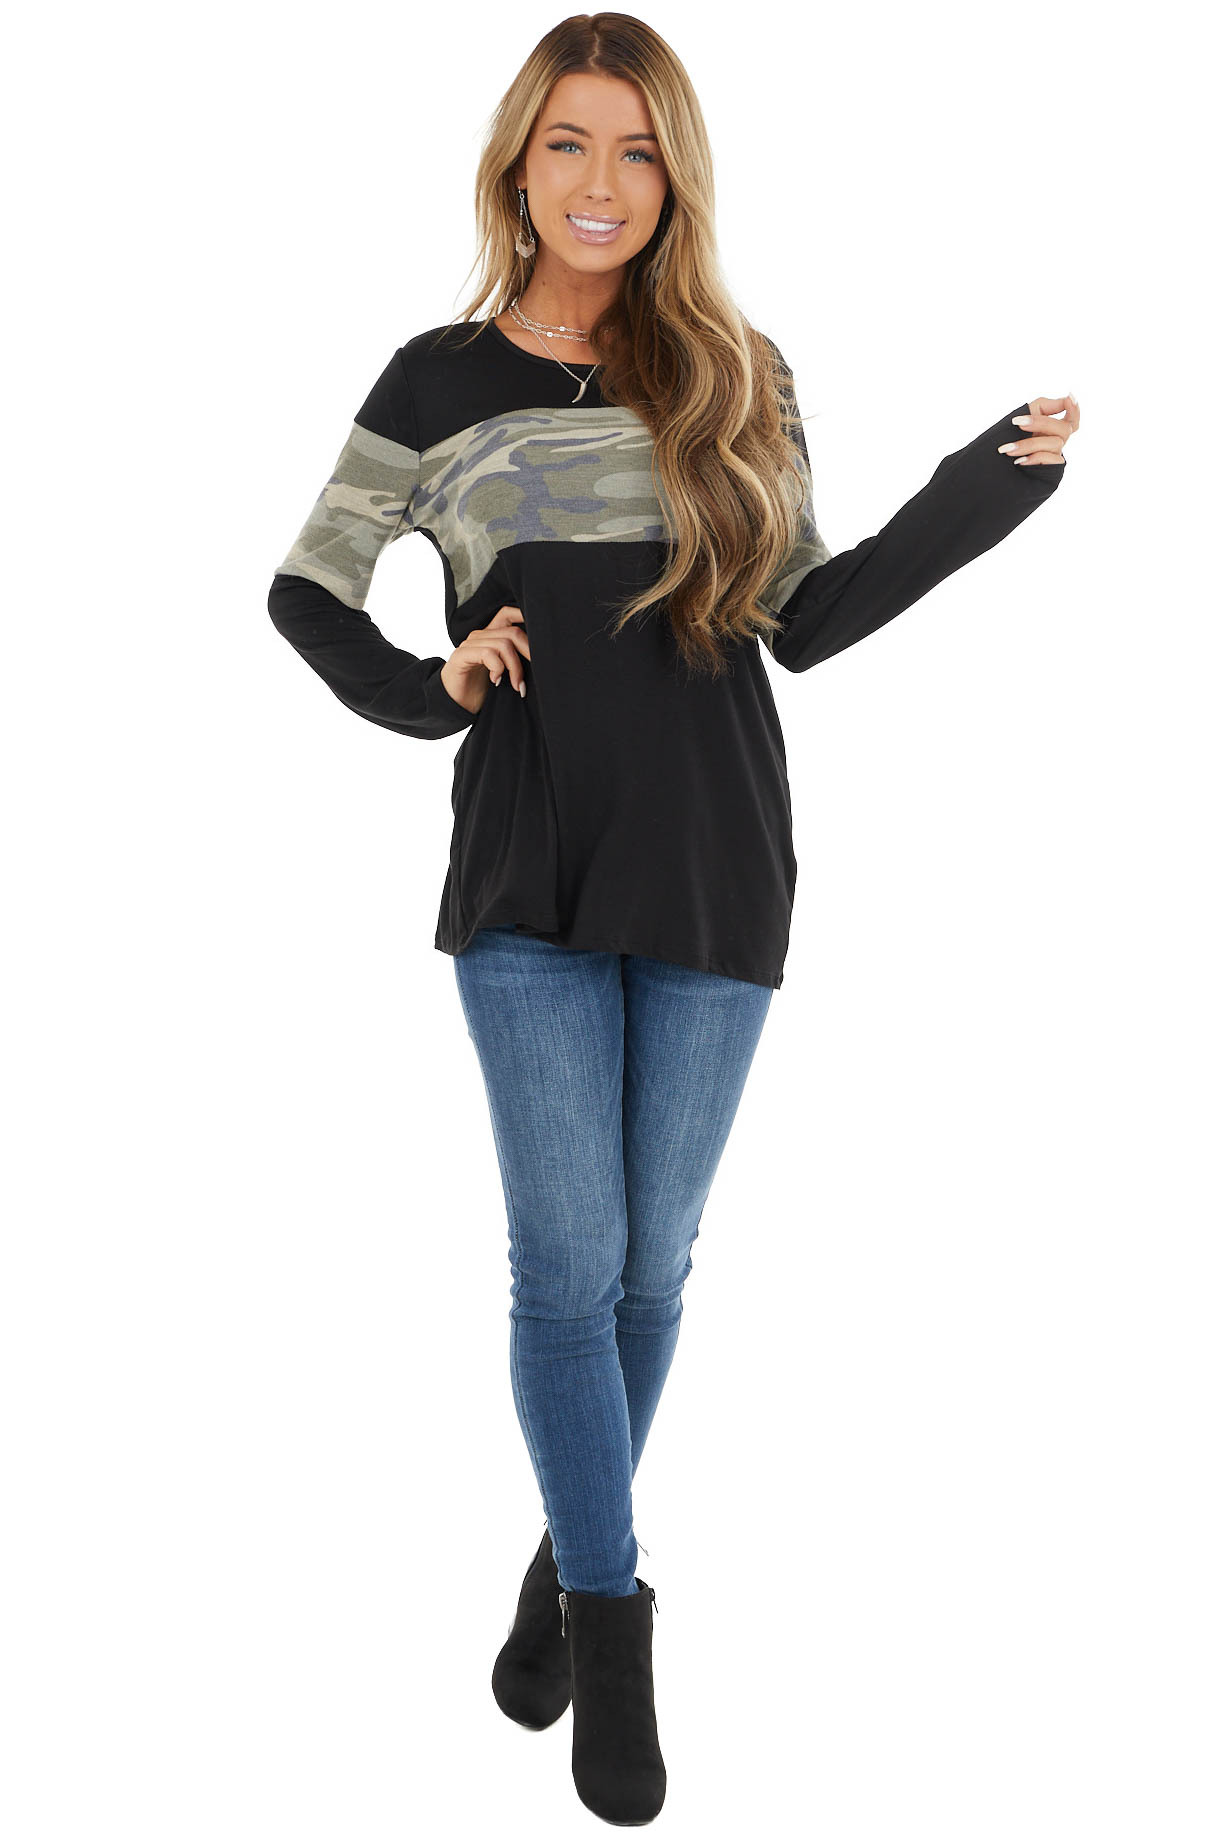 Black and Olive Long Sleeved Top with Camo Contrast